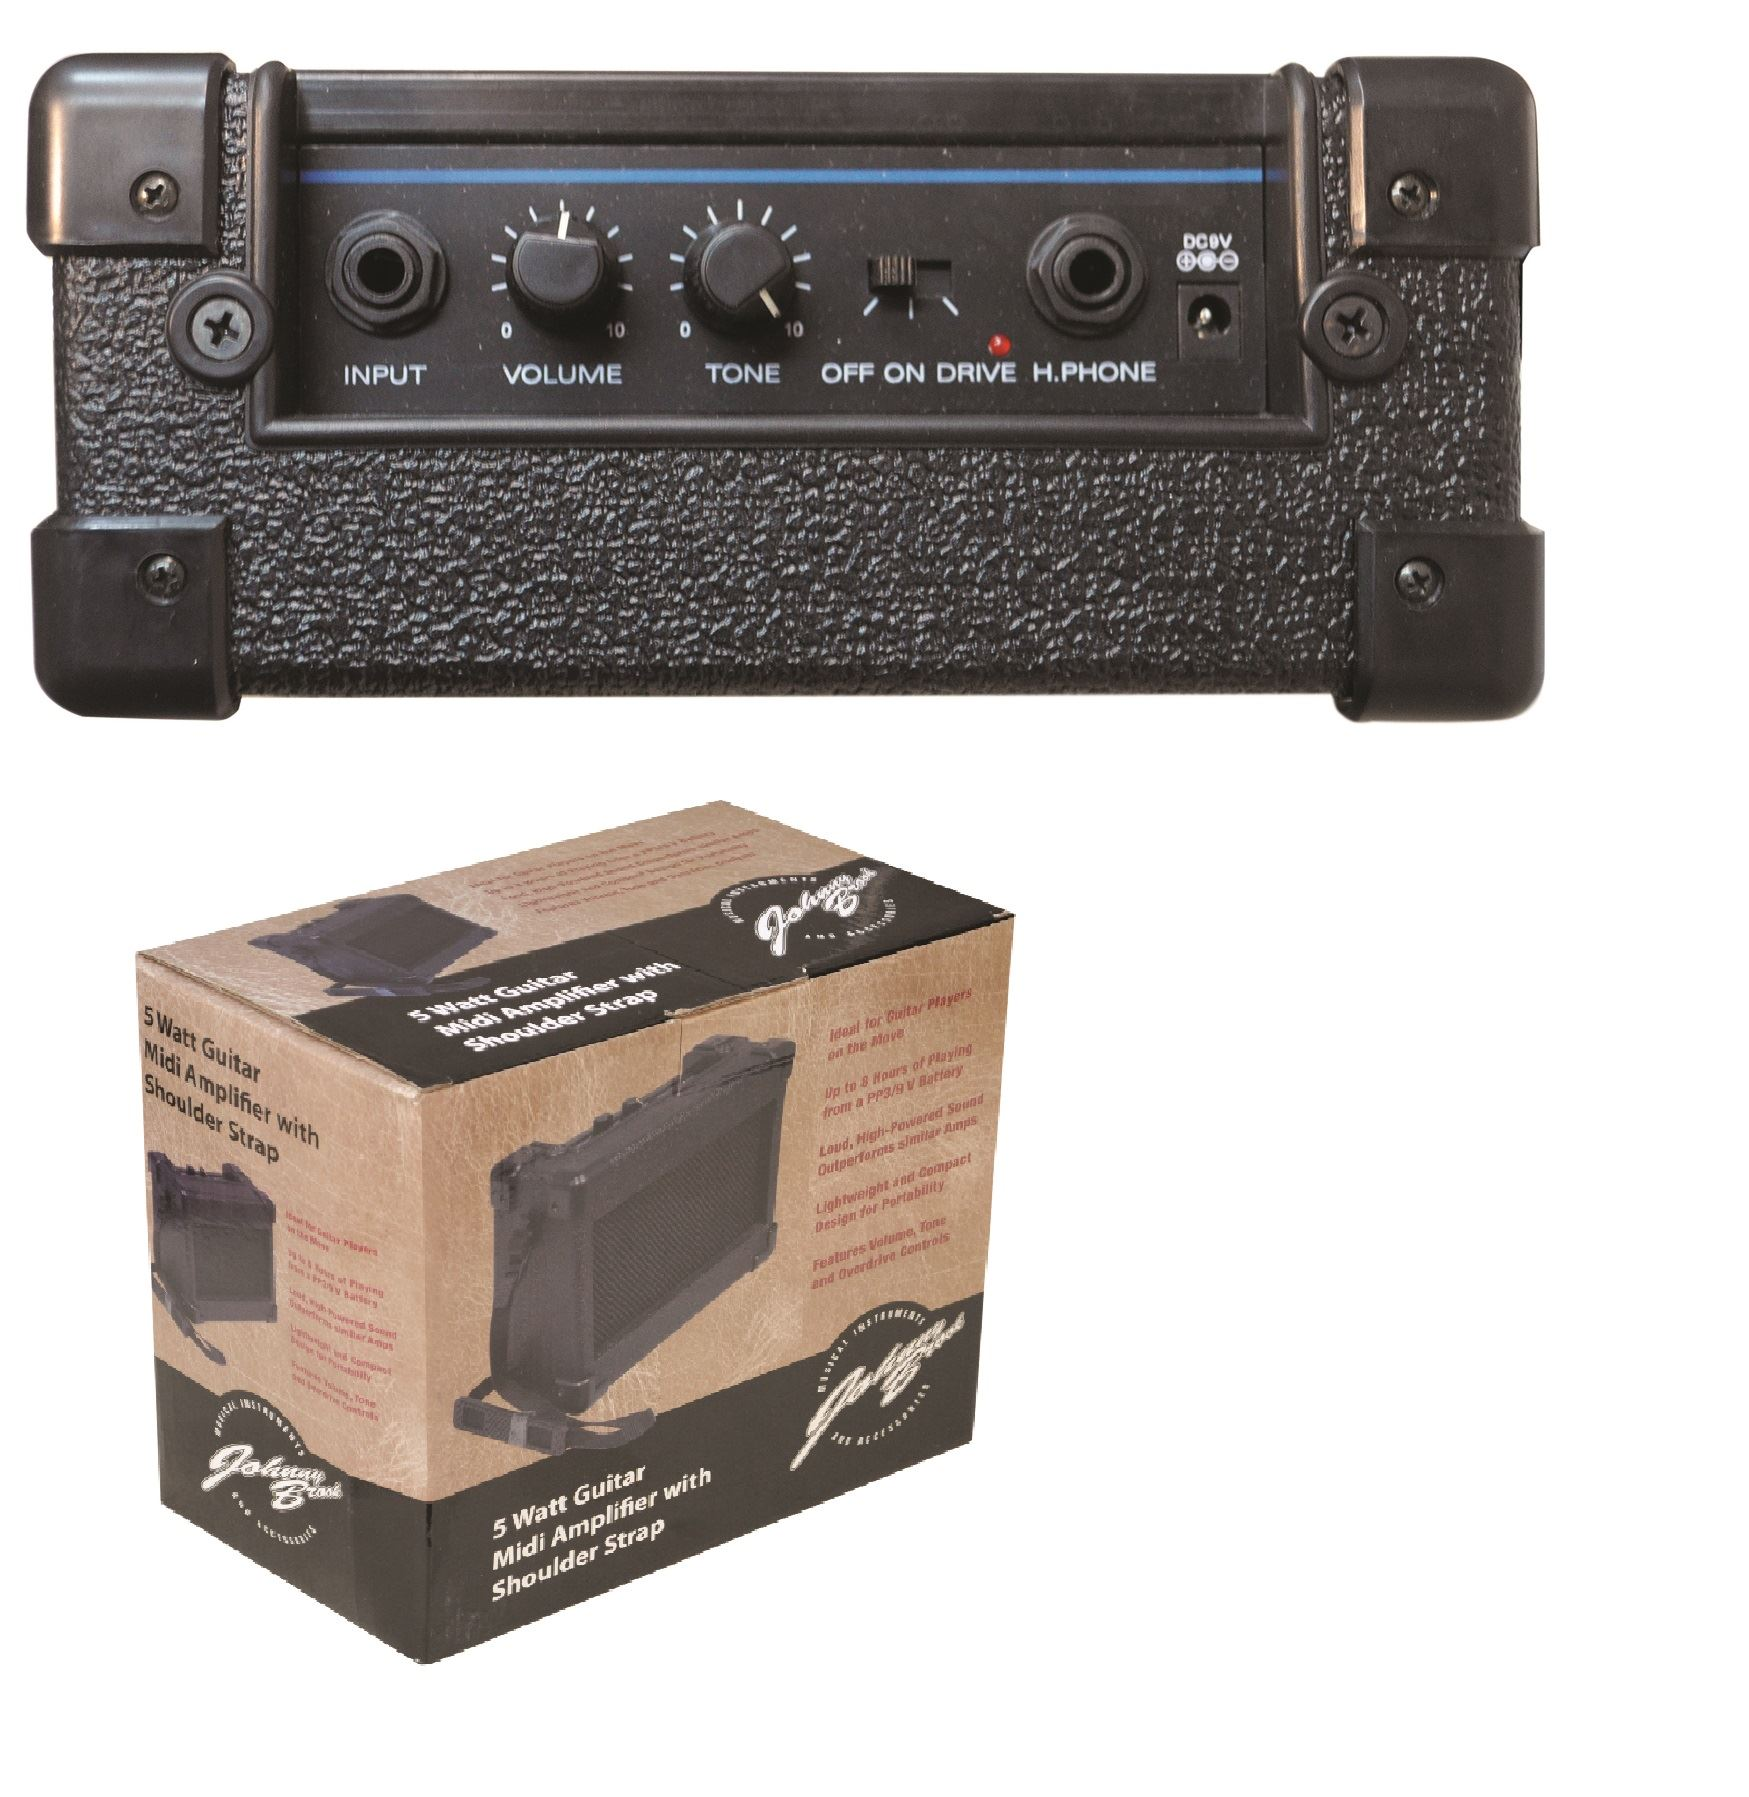 Johnny-Brook-3W-Mini-amp-5W-Midi-Guitar-Amplifier-Speaker-Belt-Clip-Shoulder-Strap